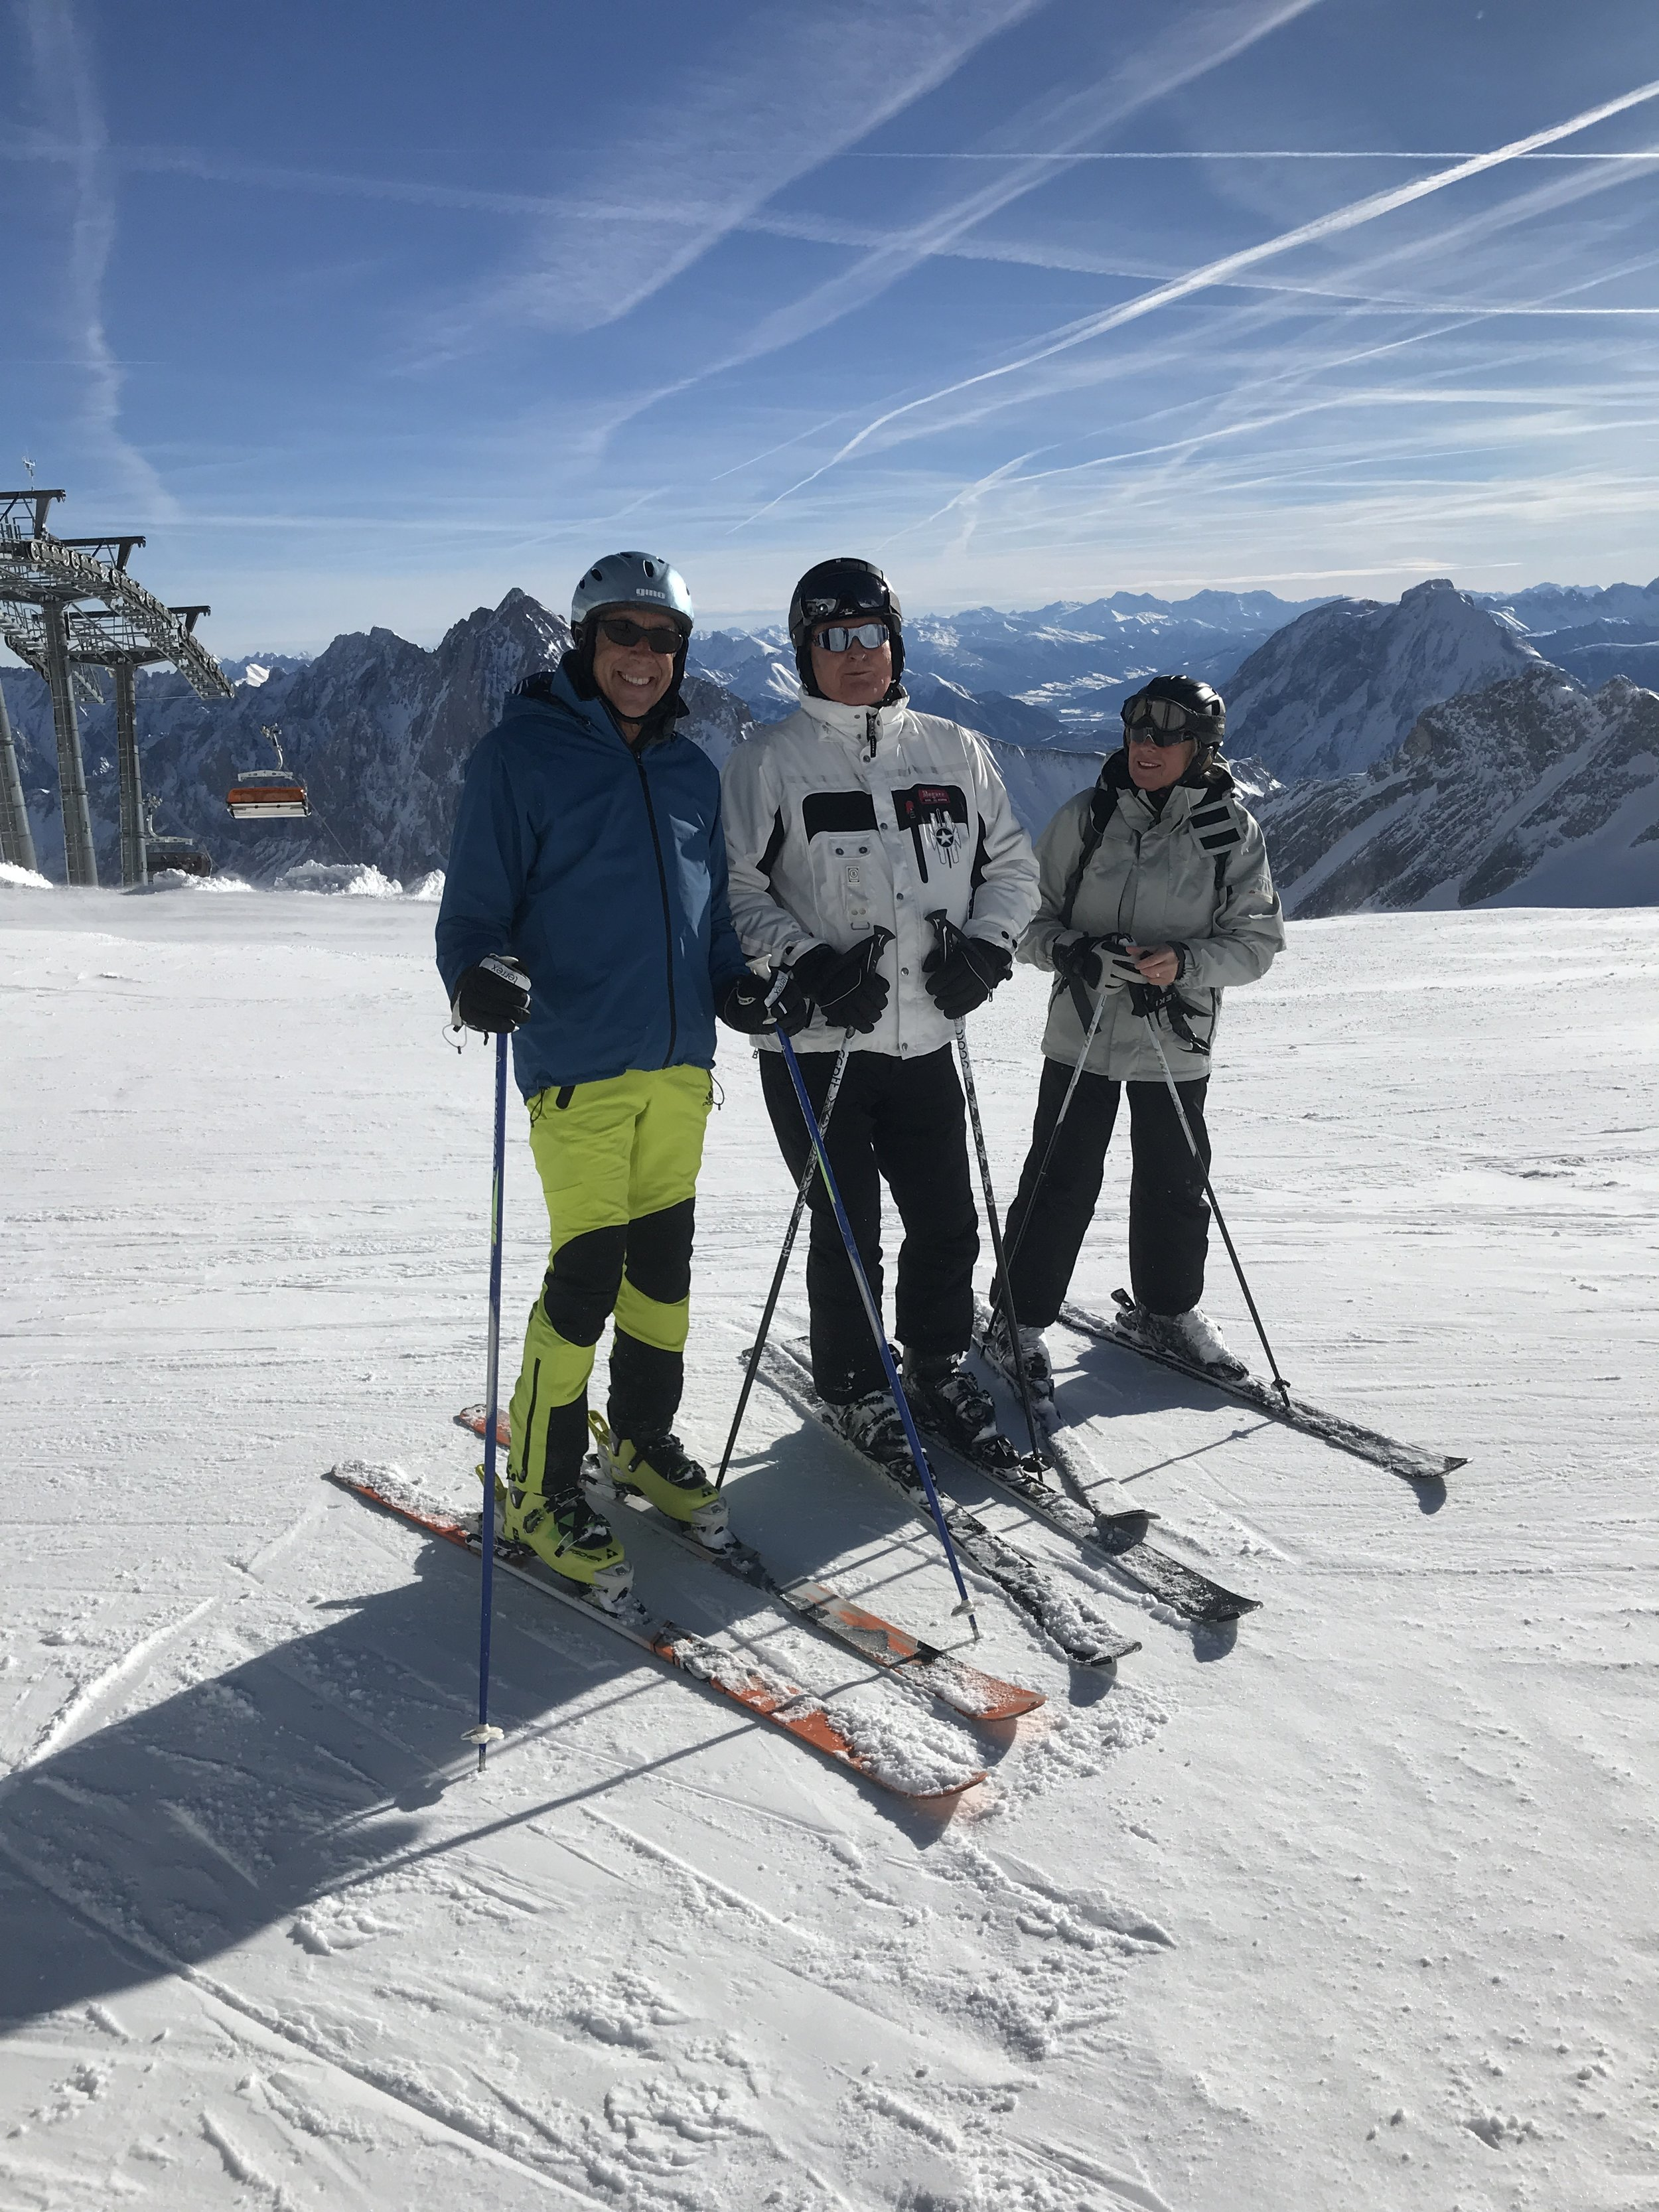 Skiing with mom & her husband